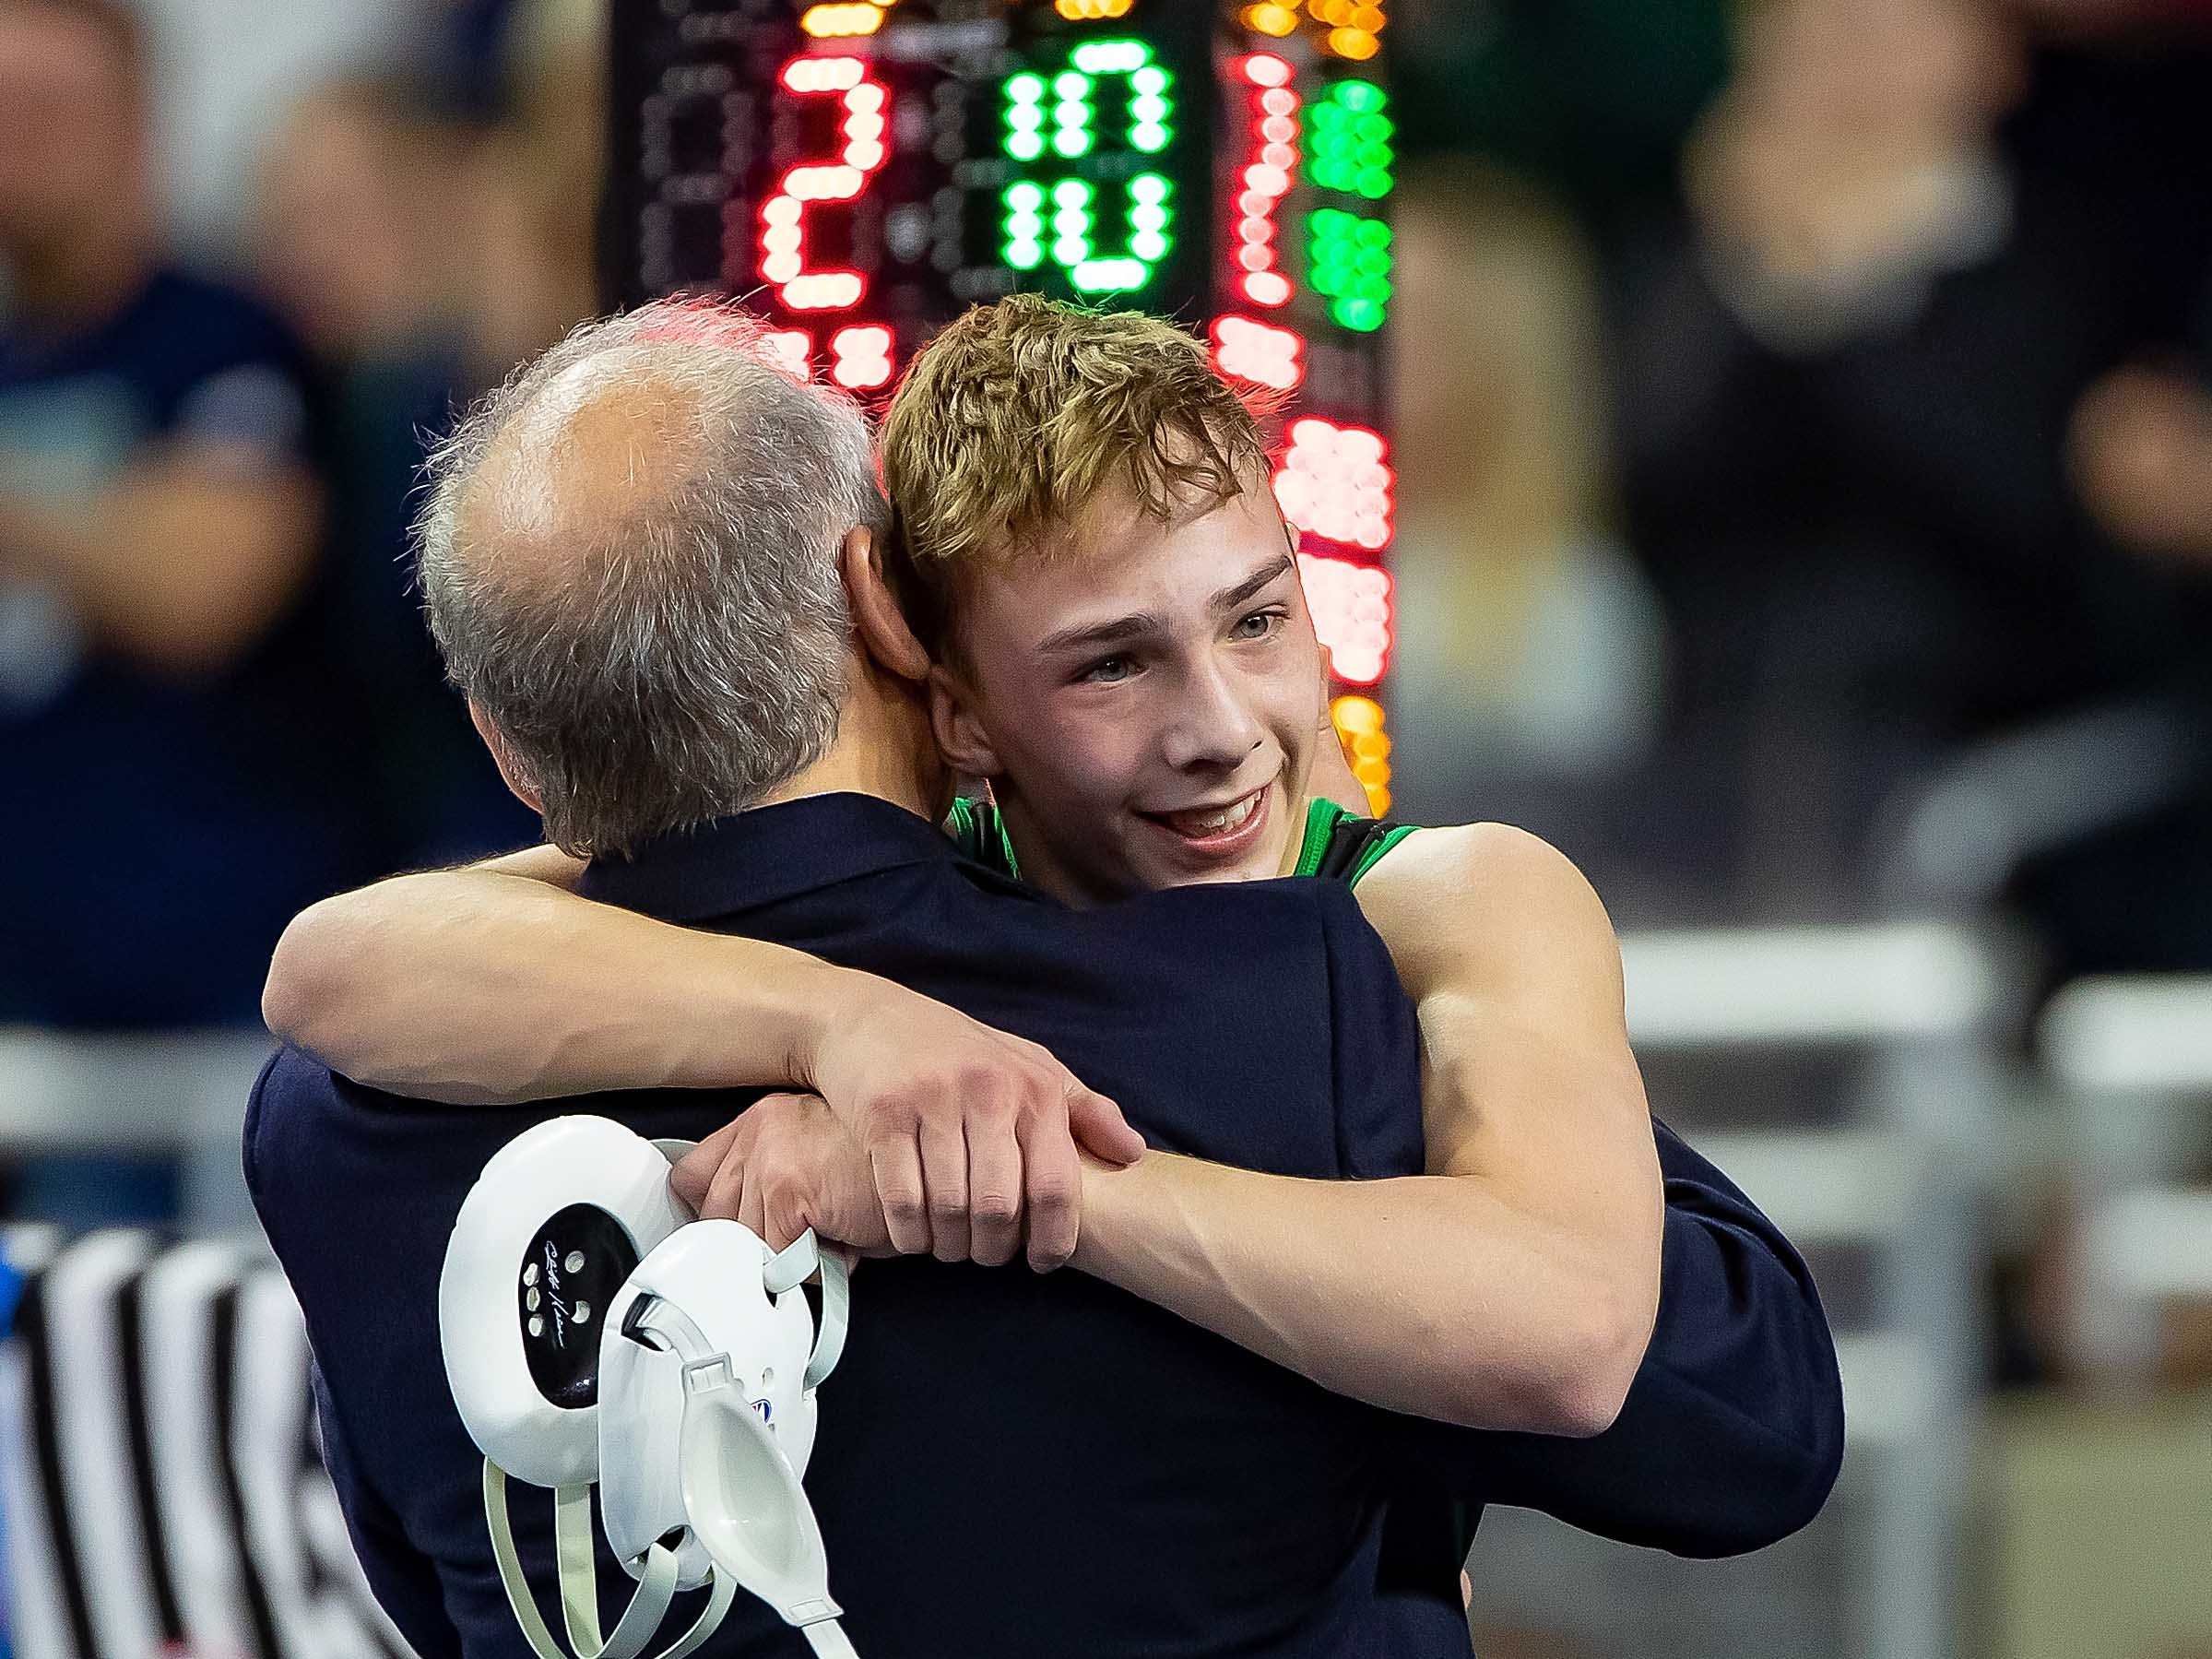 Brendan Ferretti of Macomb Dakota hugs his coach after defeating Zein Bazzi of Dearborn Heights Crestwood during their 112-pound Division 1 championship match.